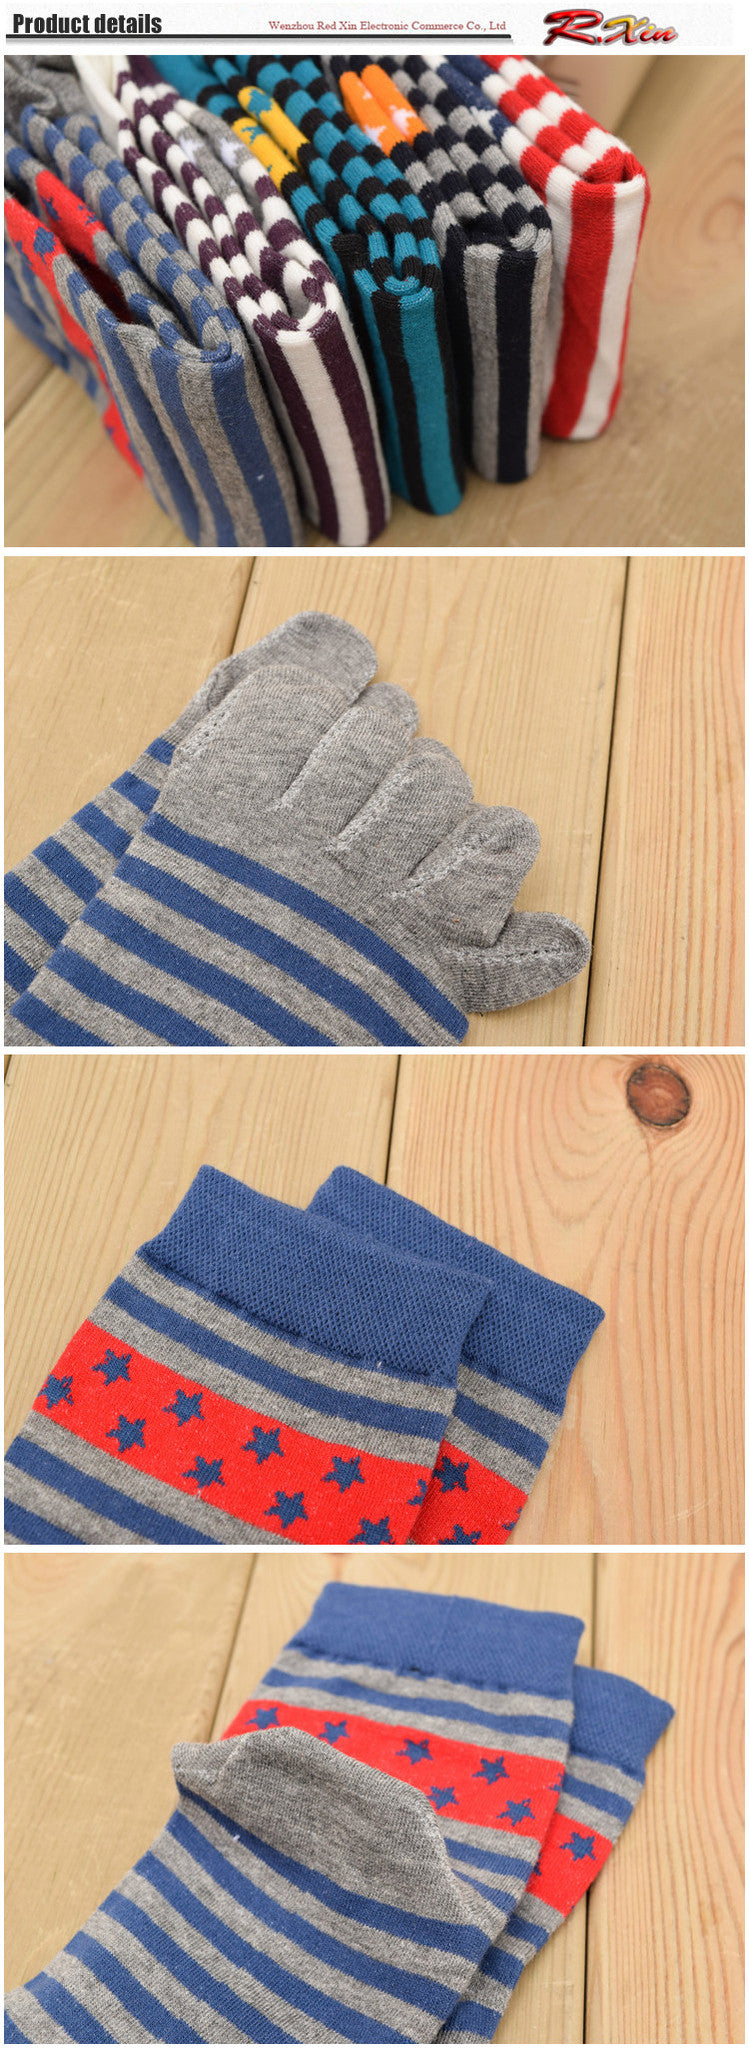 Wiggle Socks New Unisex Socks Cotton Meias Sports Five Finger Socks Toe Socks For EU 40-46 Calcetines Ankle Socls - Cerkos  - 9